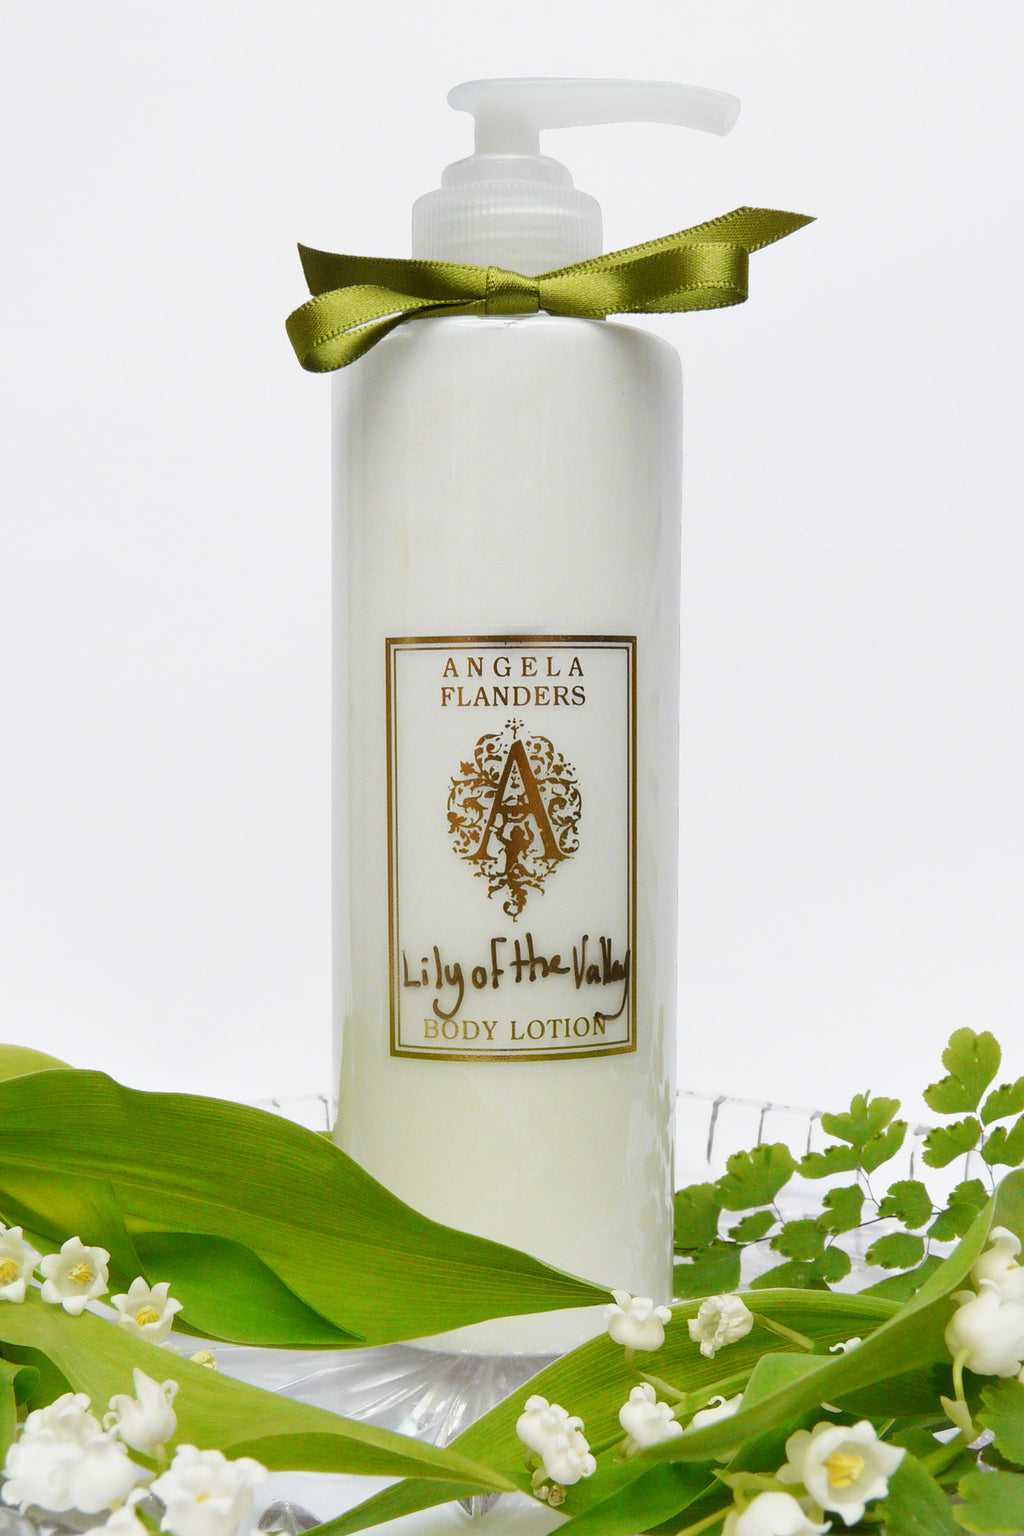 Angela Flanders Lily of the Valley Body Lotion 250ml